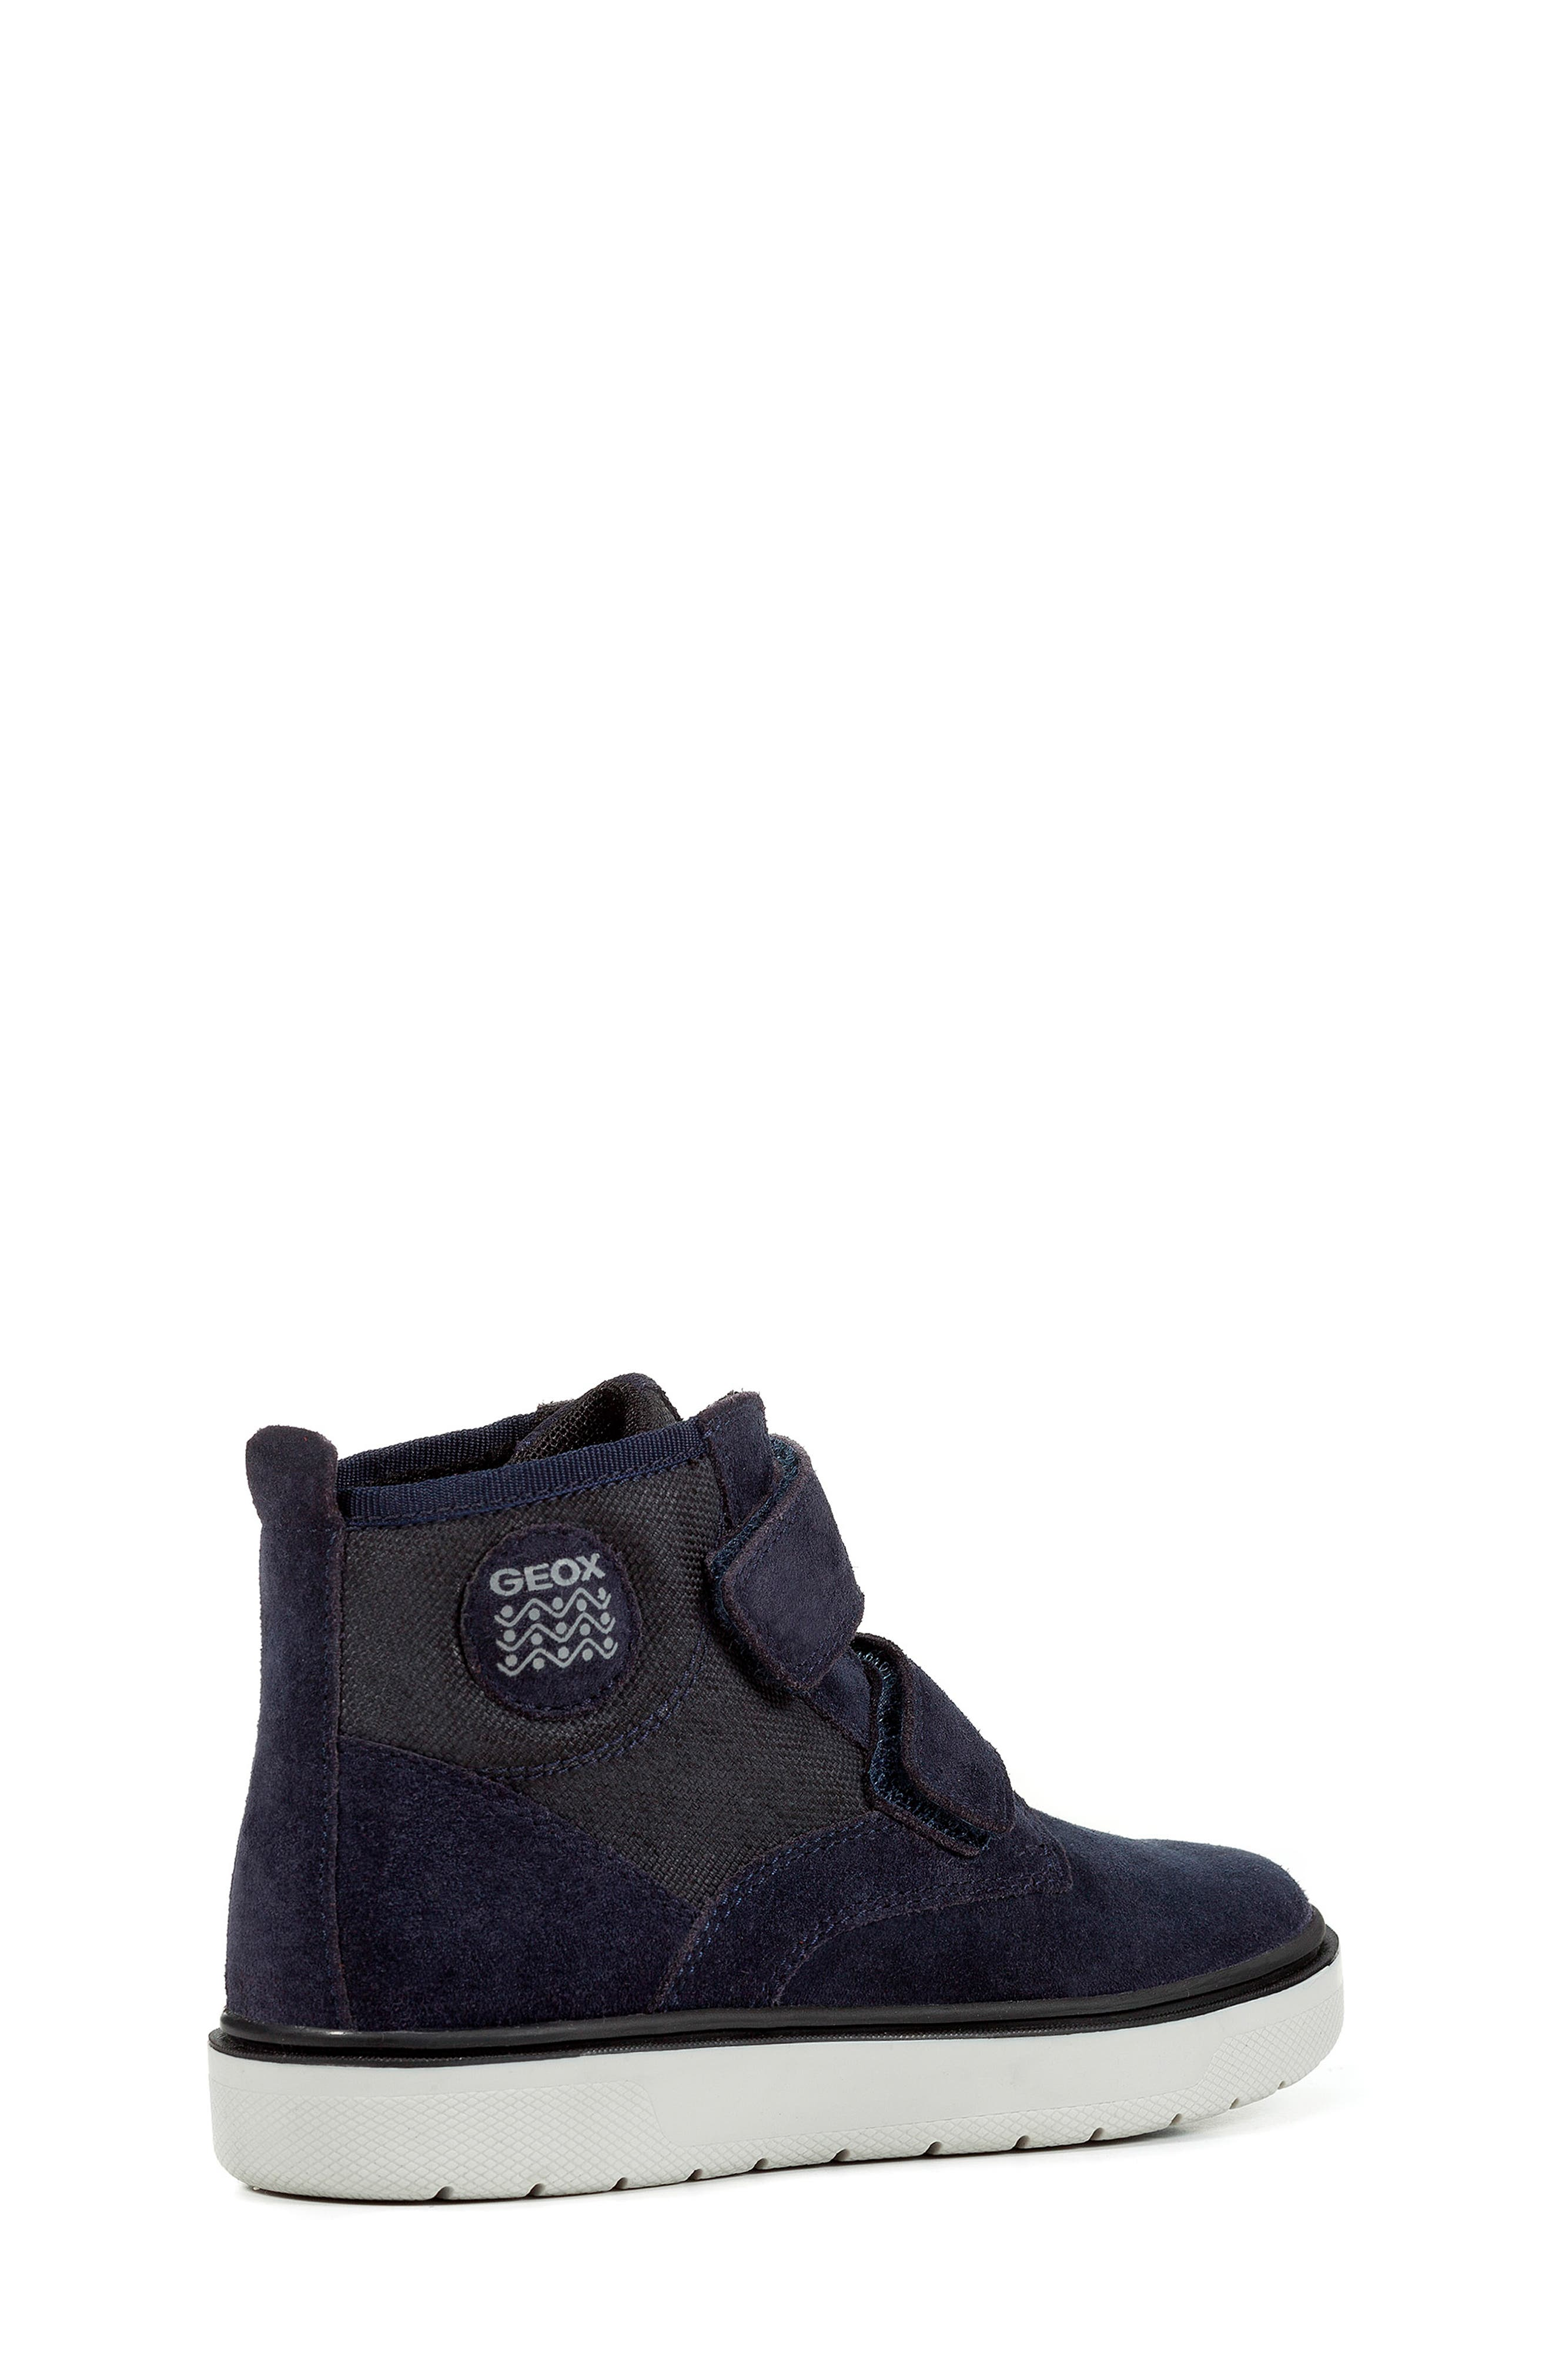 Riddock High Top Sneaker,                             Alternate thumbnail 3, color,                             NAVY/GREY